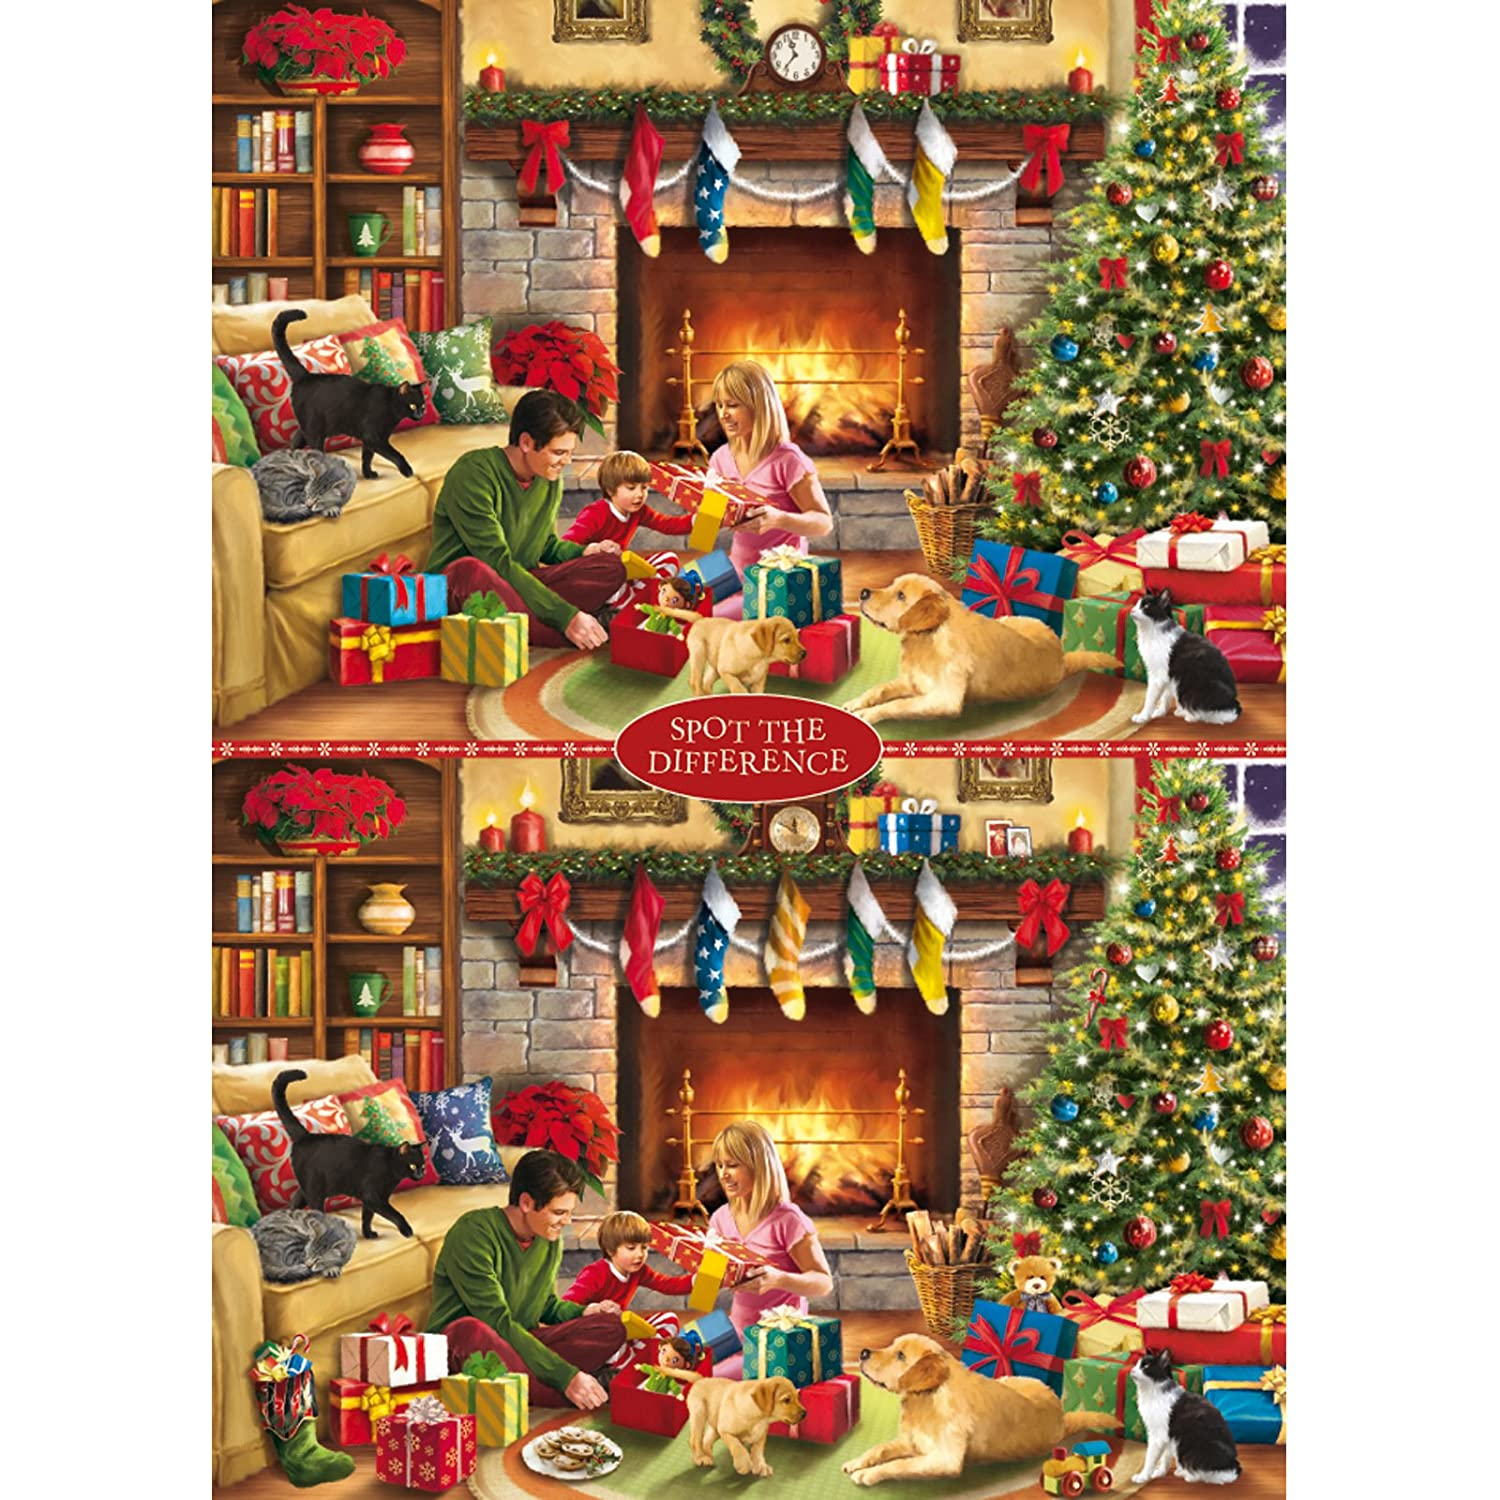 Otter House Christmas Spot the Difference No 1 1000 Piece Jigsaw